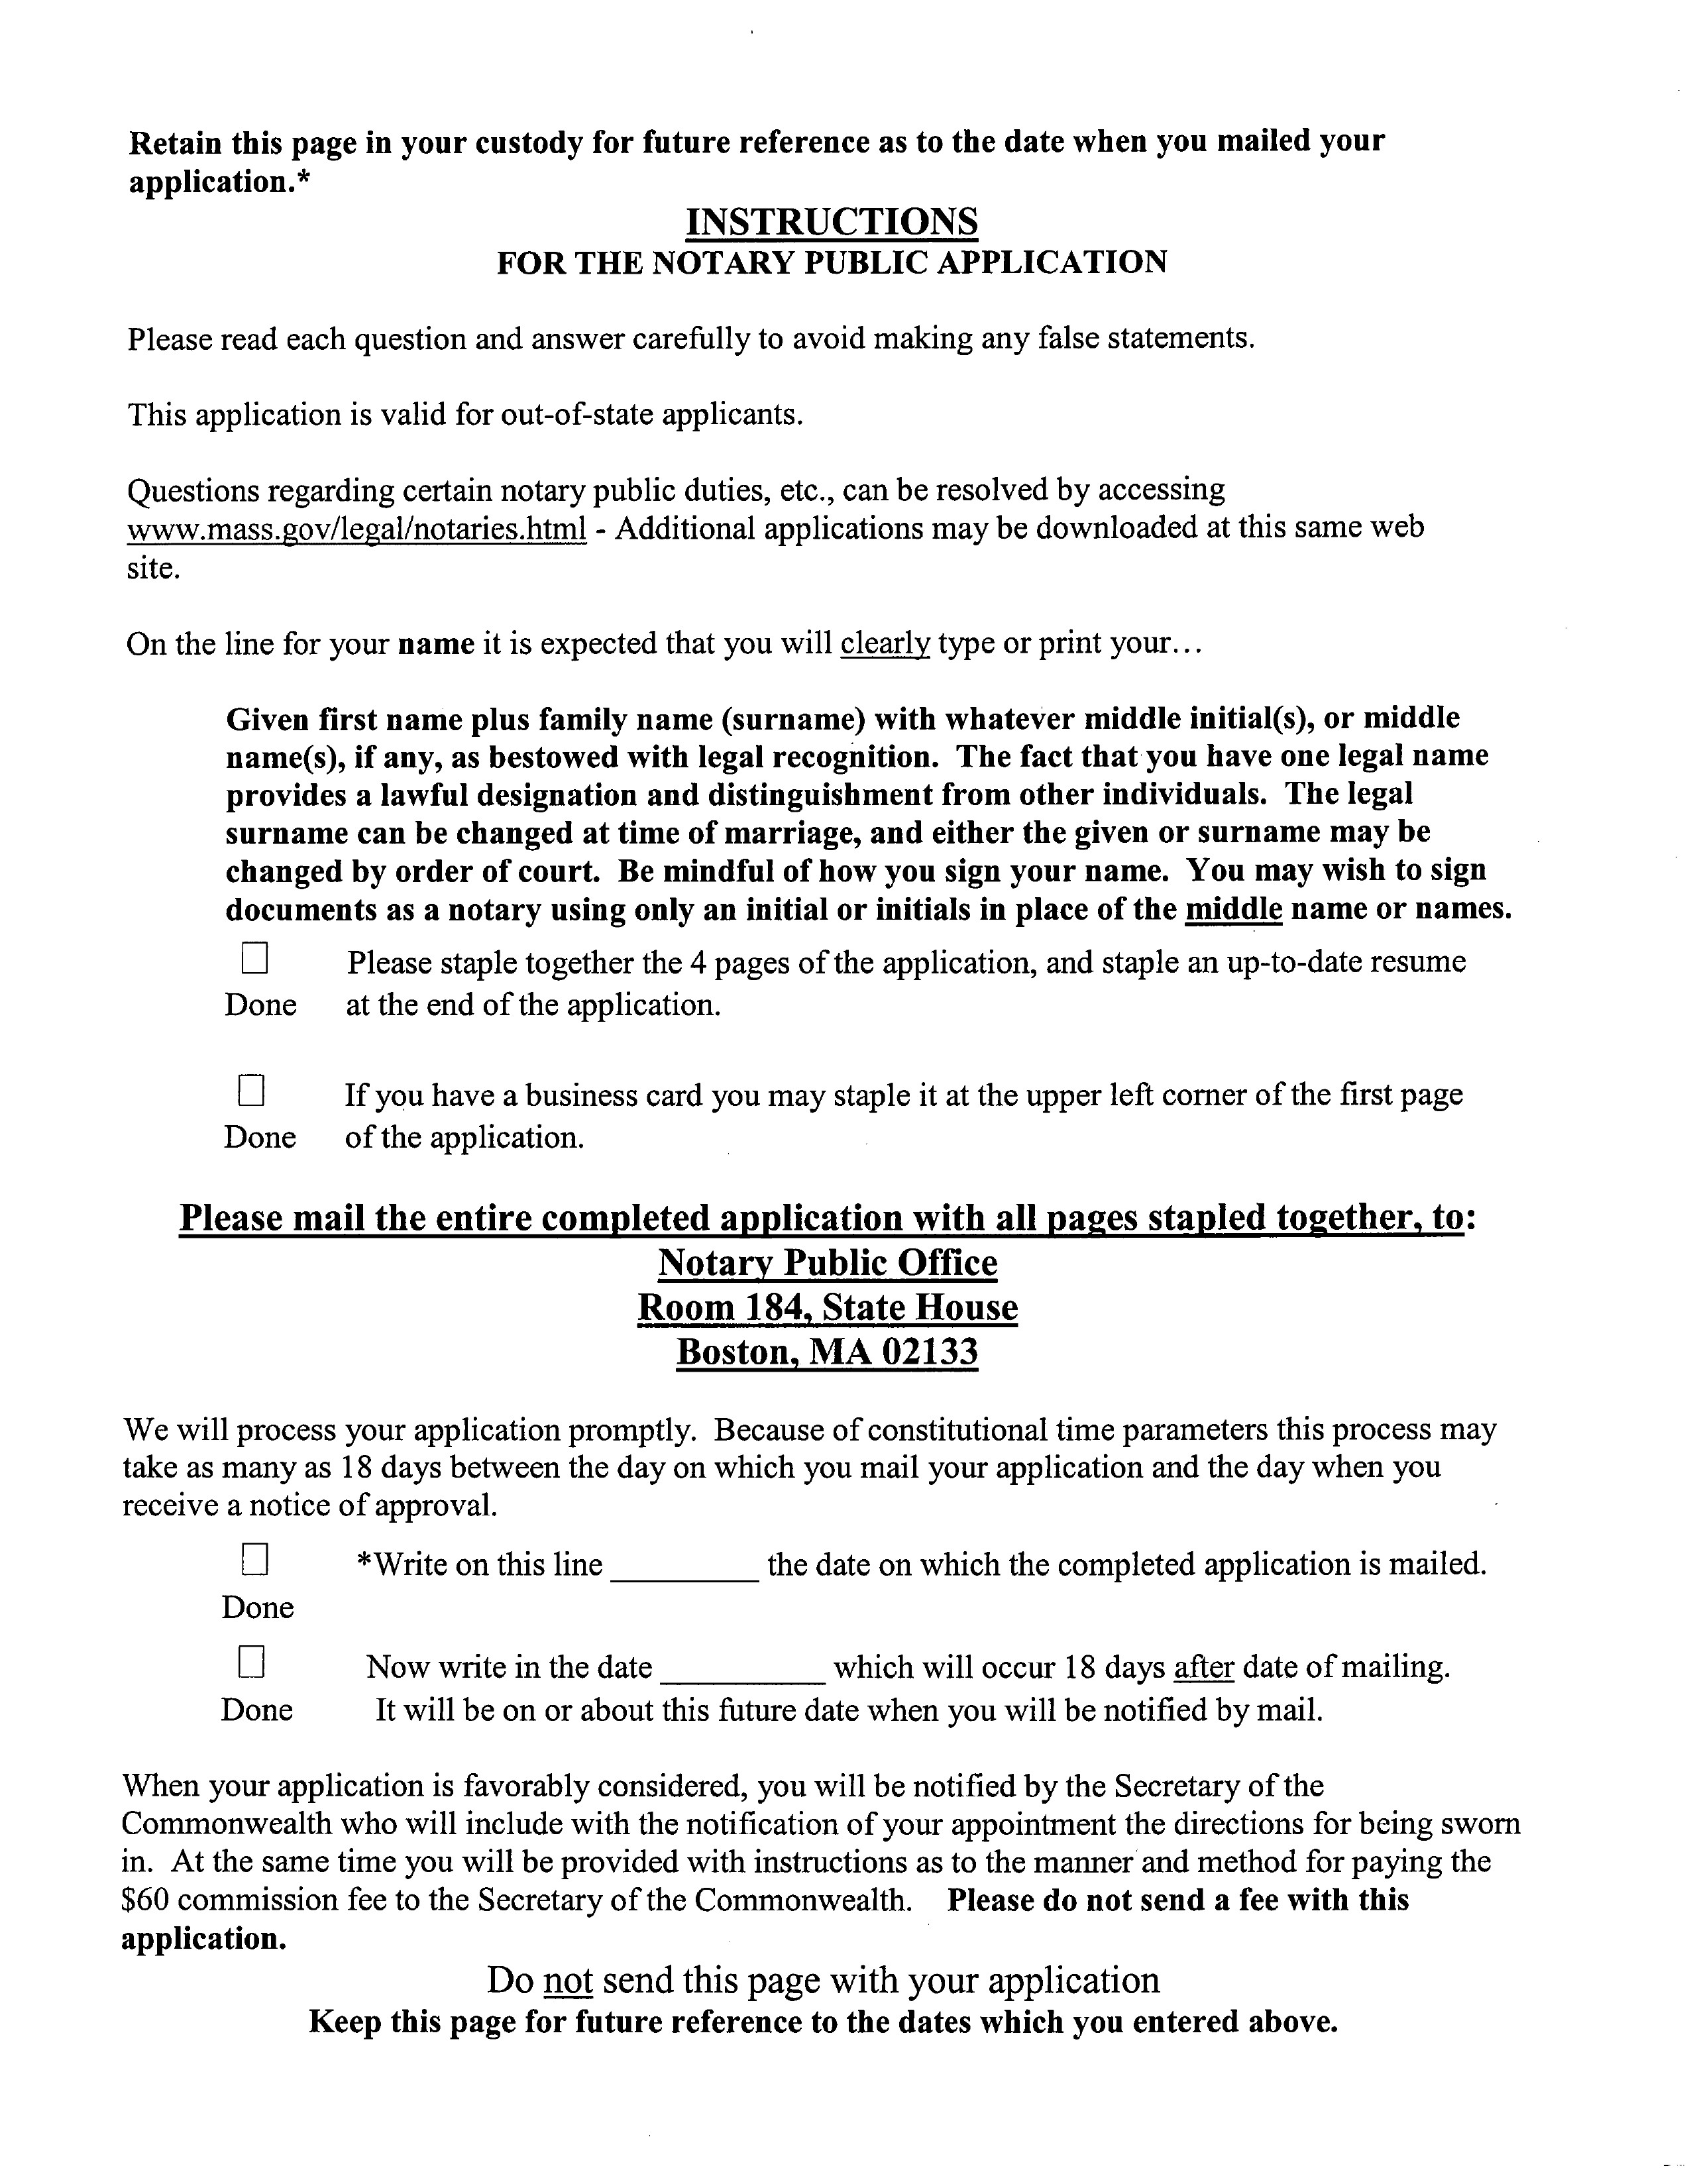 Massachusetts Notary Public Application Form